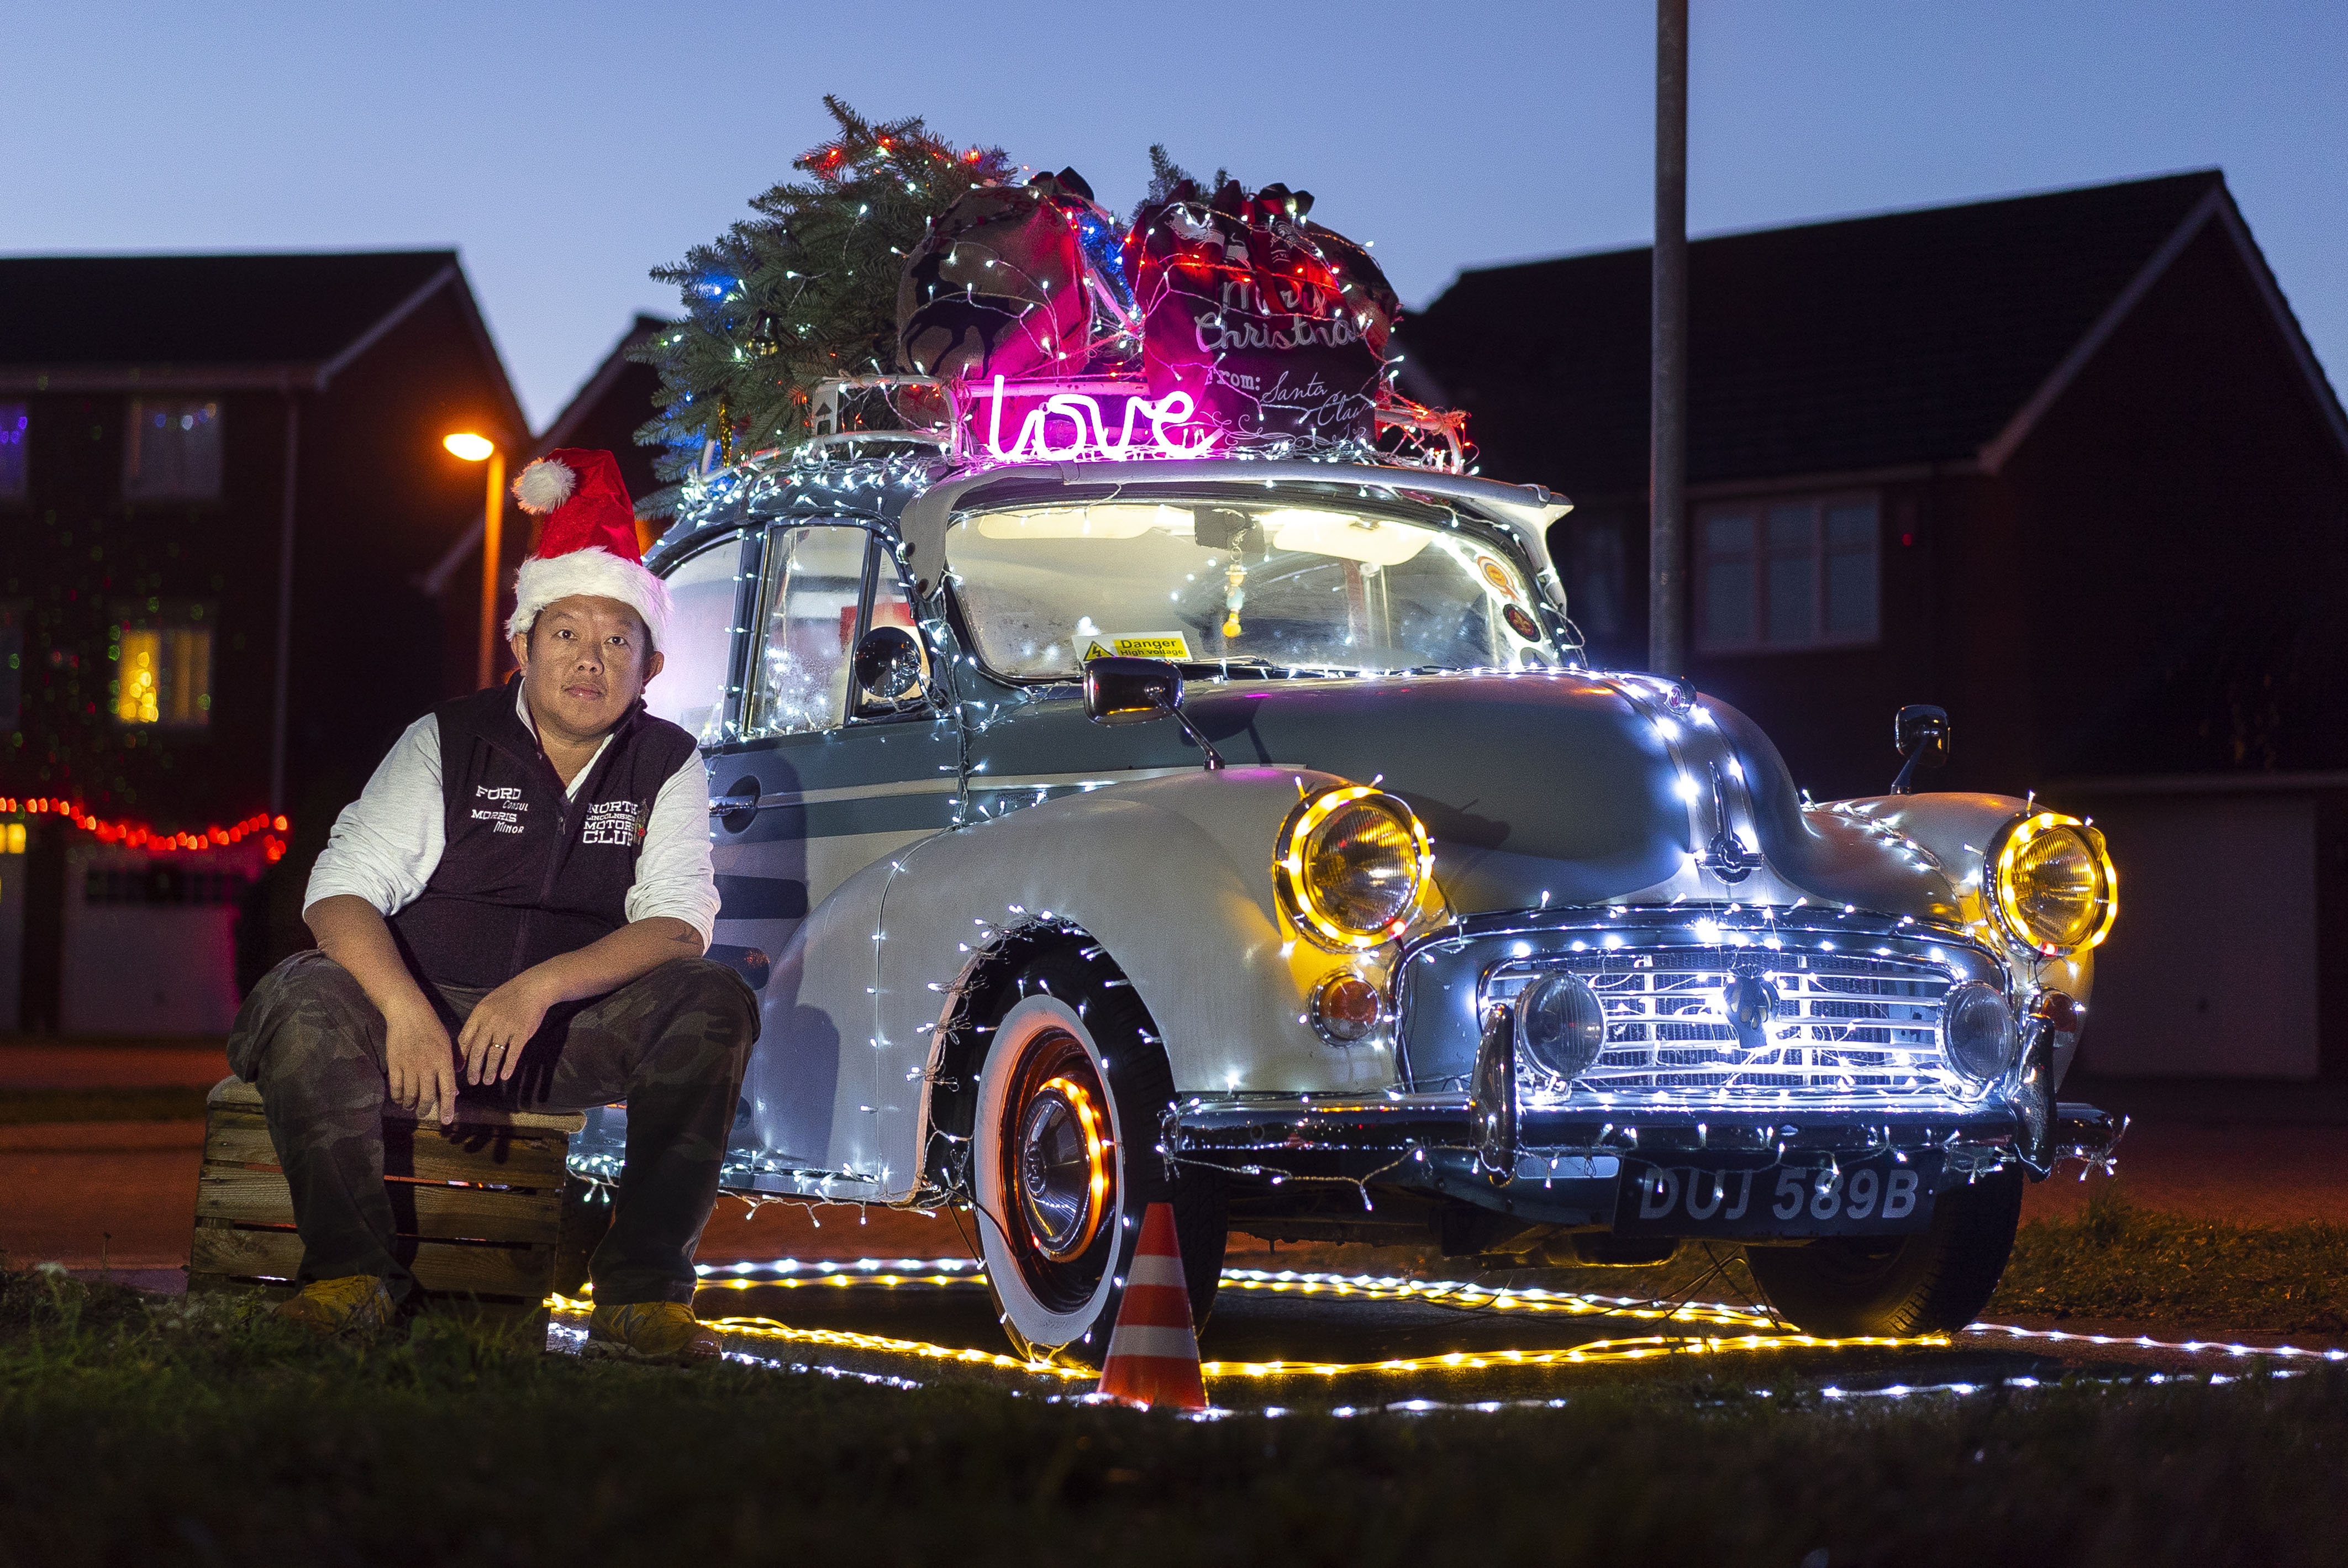 Man Inspired By Iconic Coca Cola Christmas Truck Covers